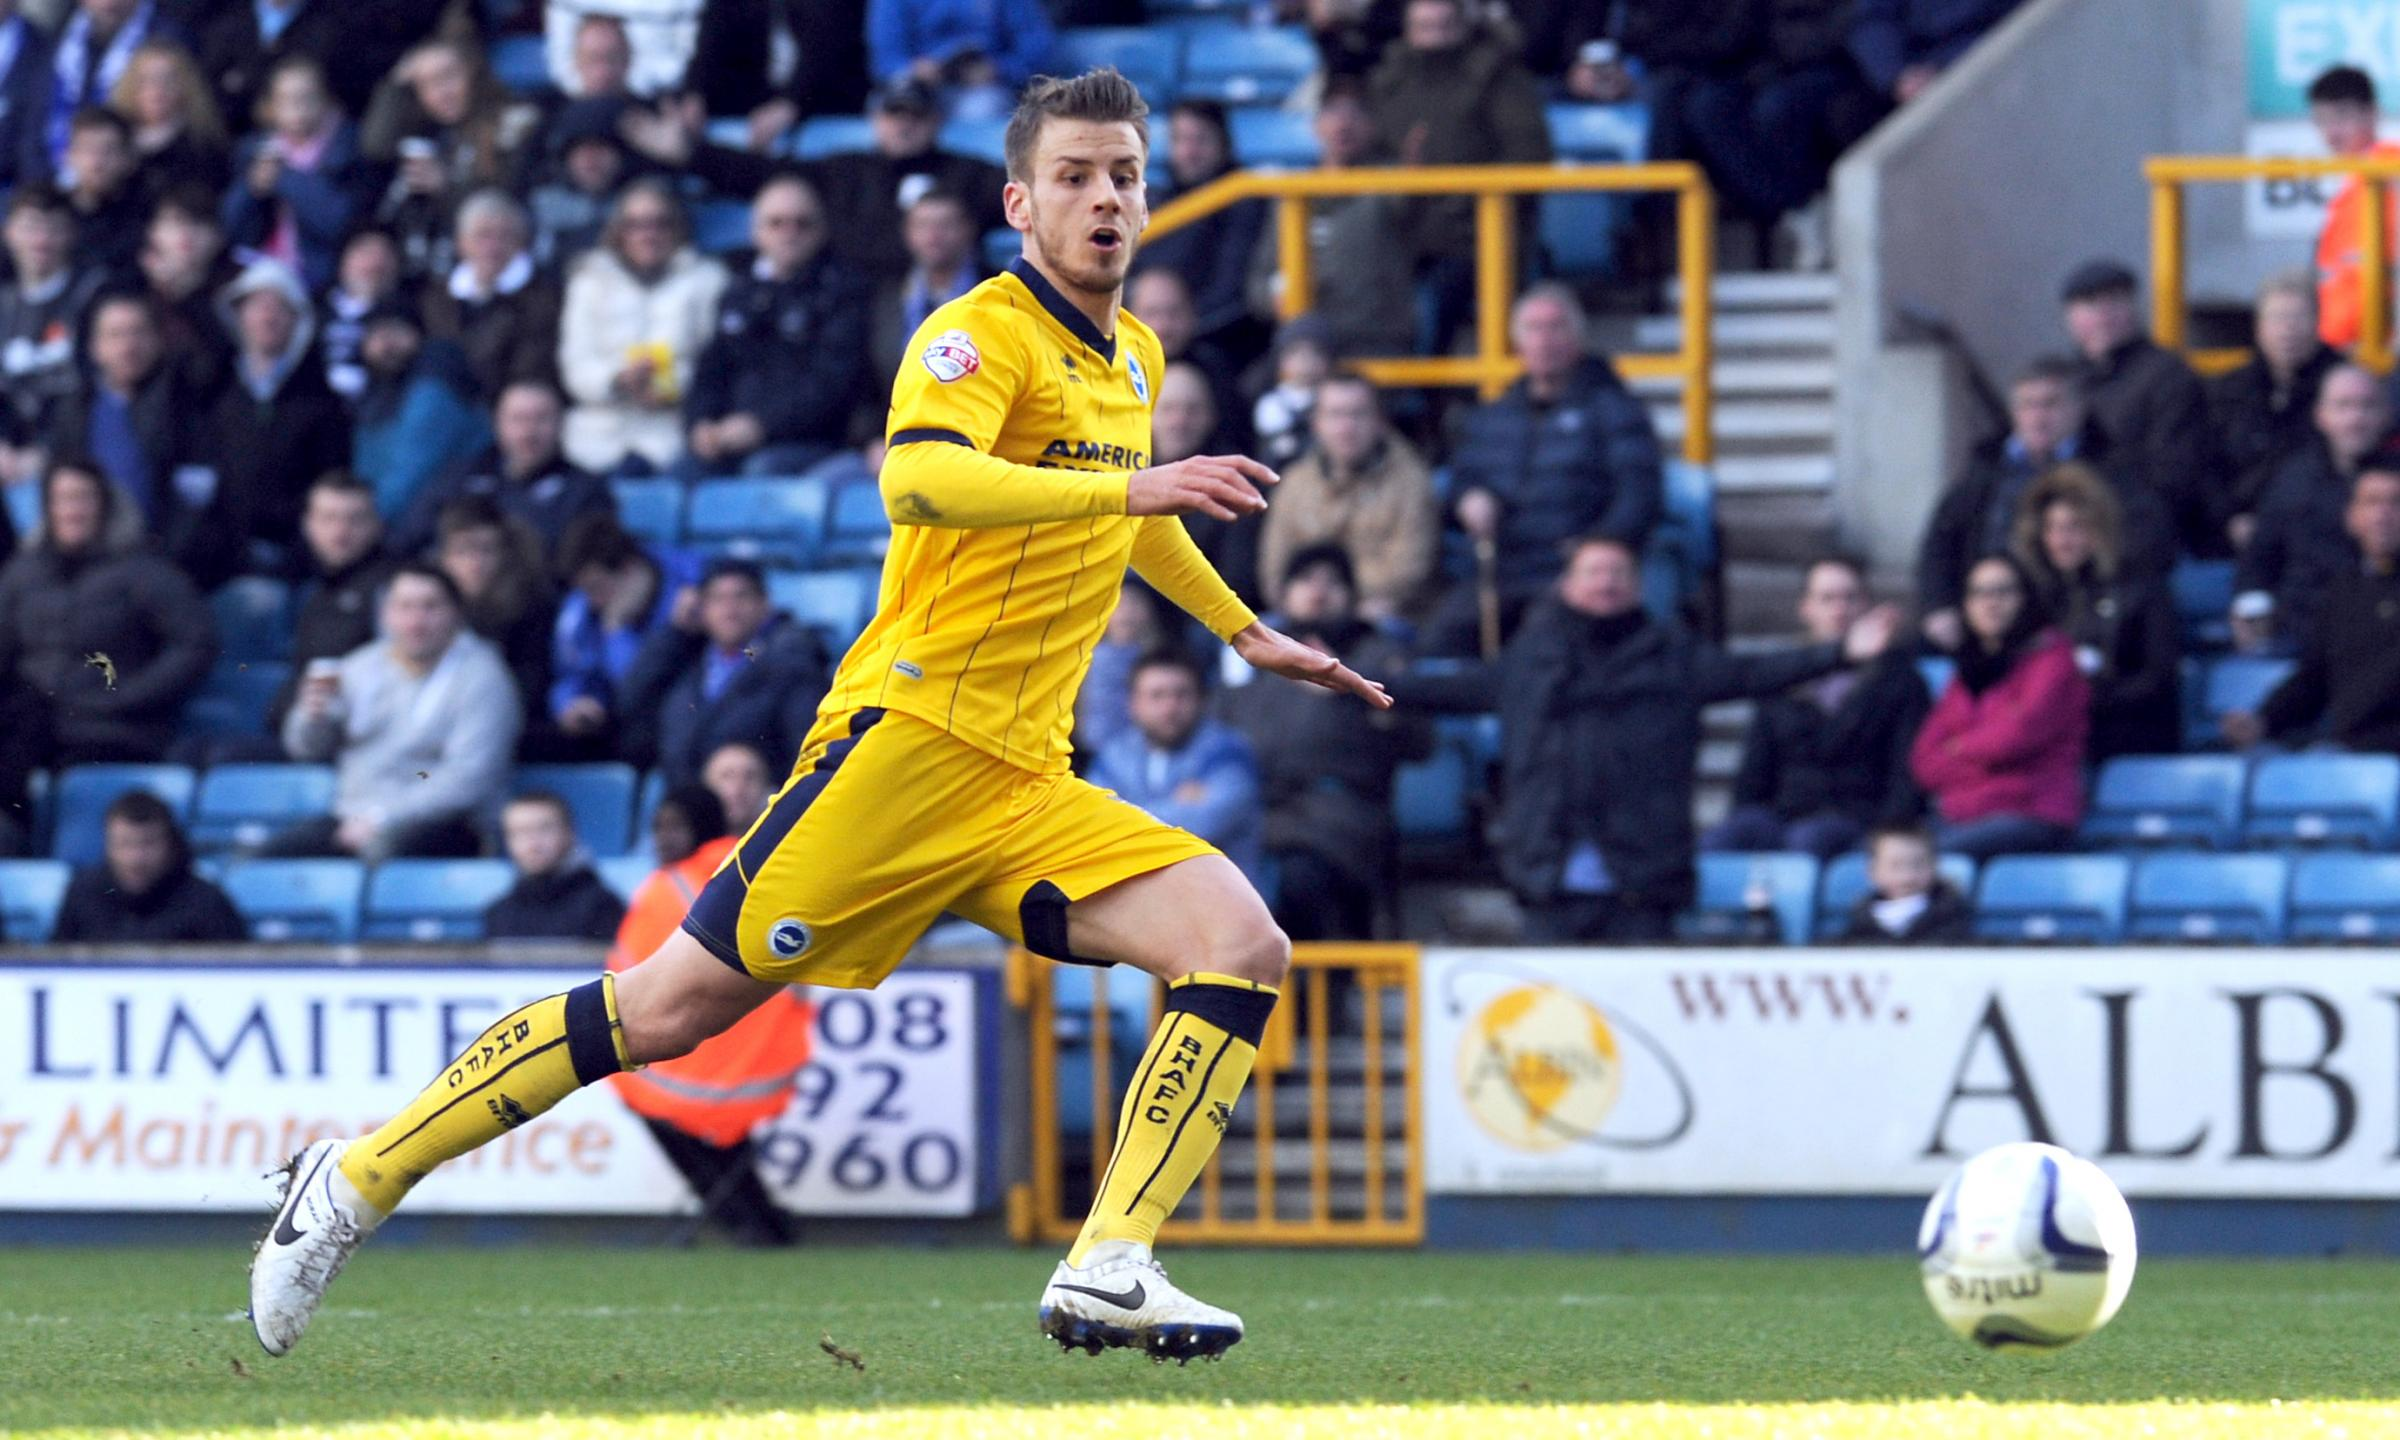 Andrea Orlandi has made a big impact since returning from injury